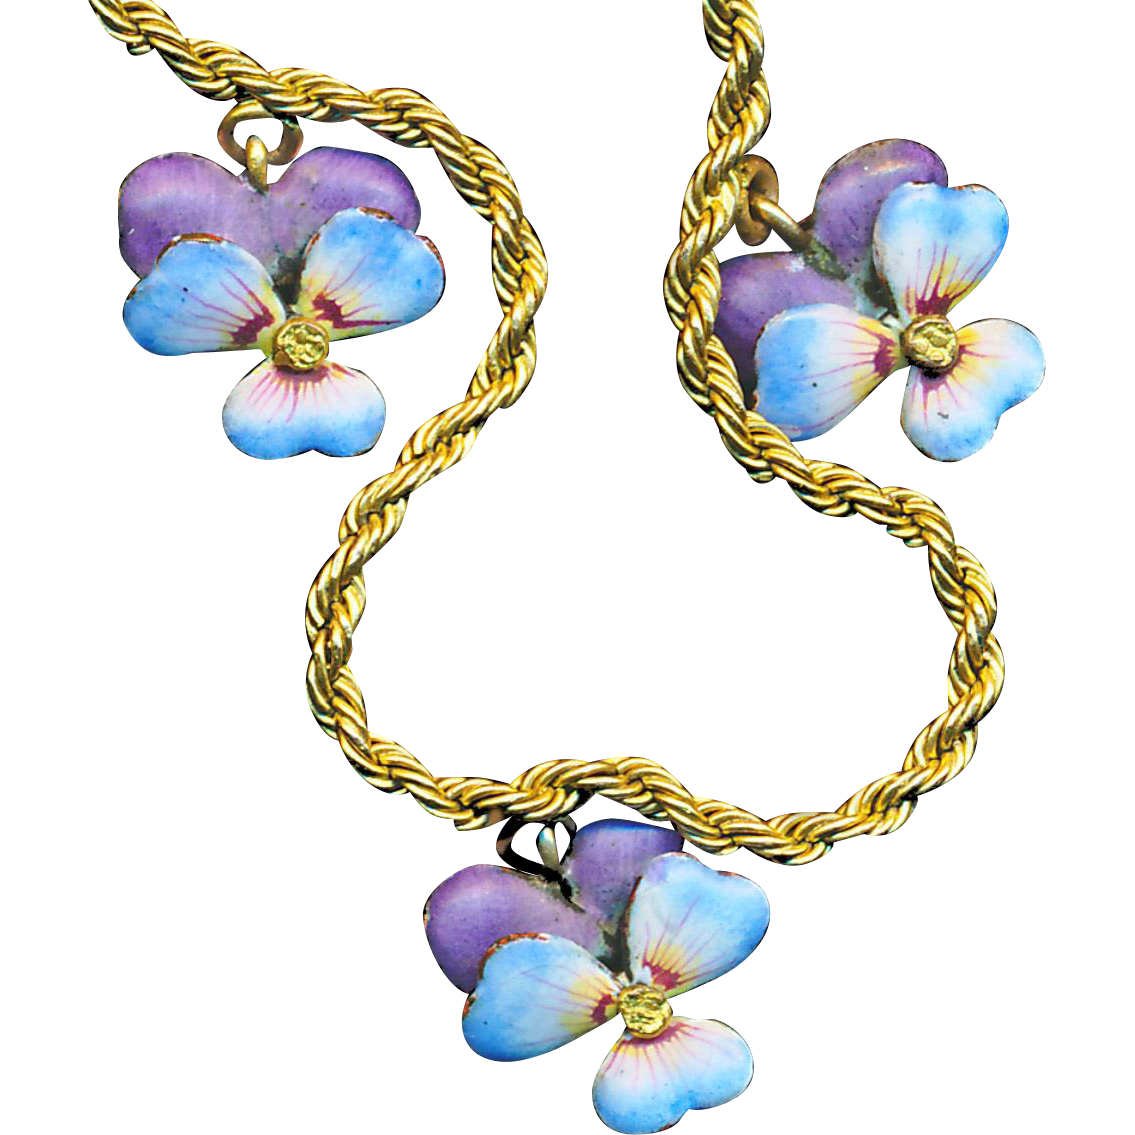 Necklace--Vintage Enamel Pansies or Violets on Gold-filled Metal with 15 Inch Chain